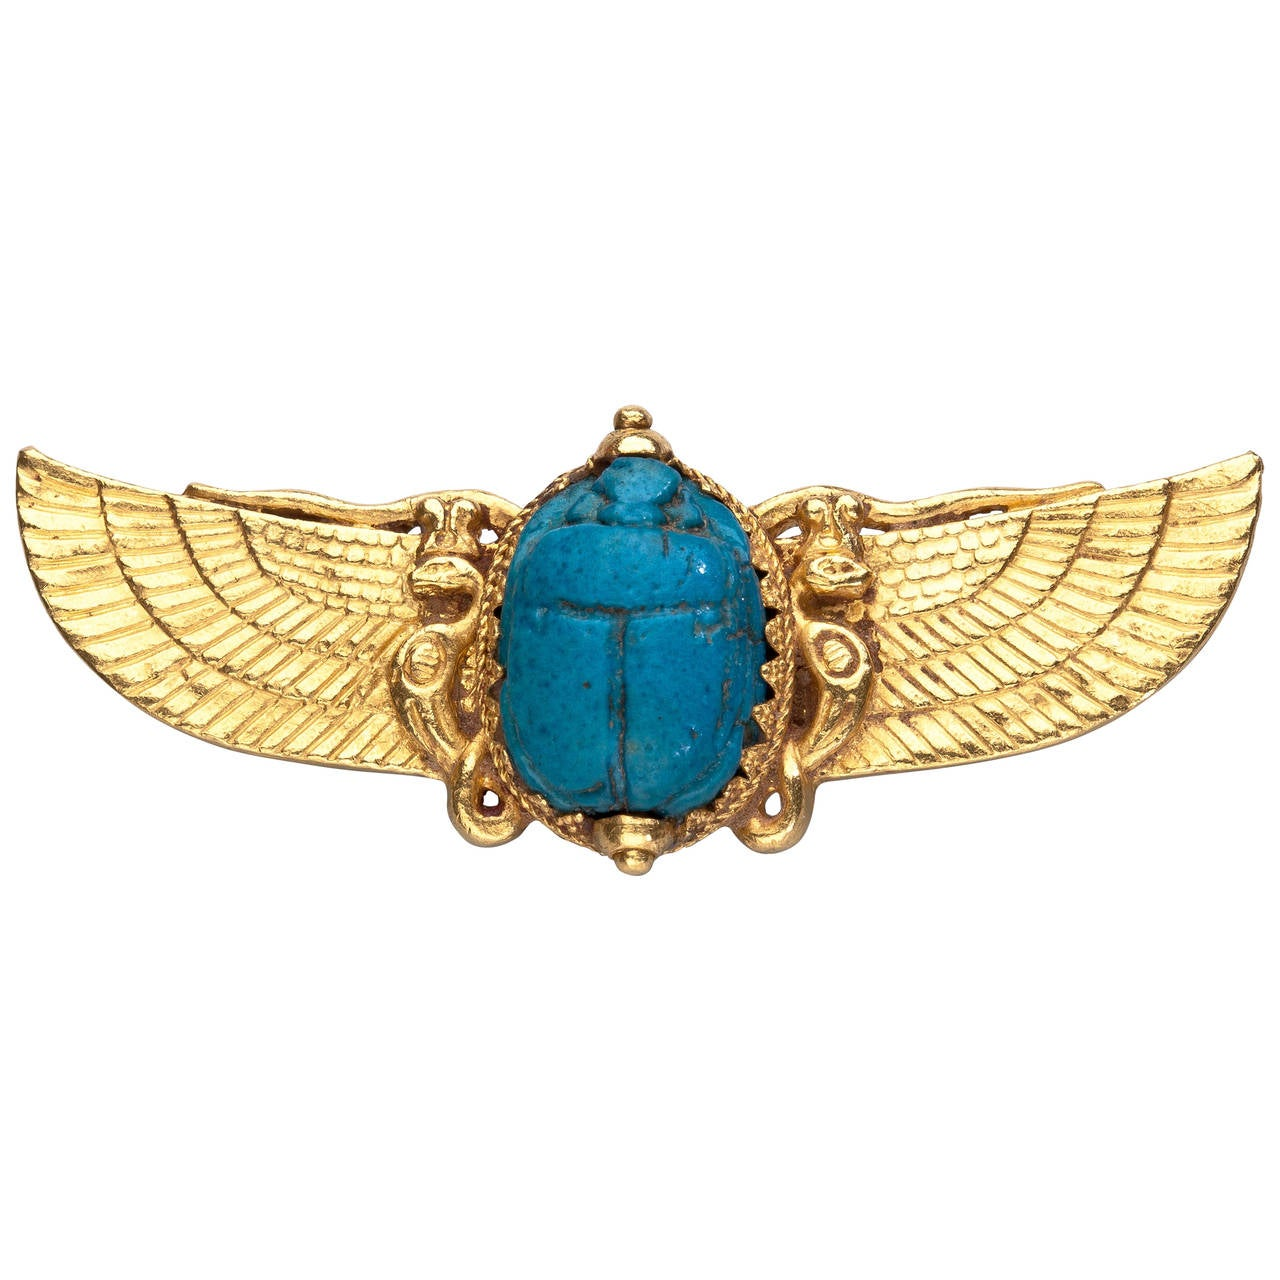 Jule wiese antique egyptian revival gold scarab brooch at for Egyptian jewelry